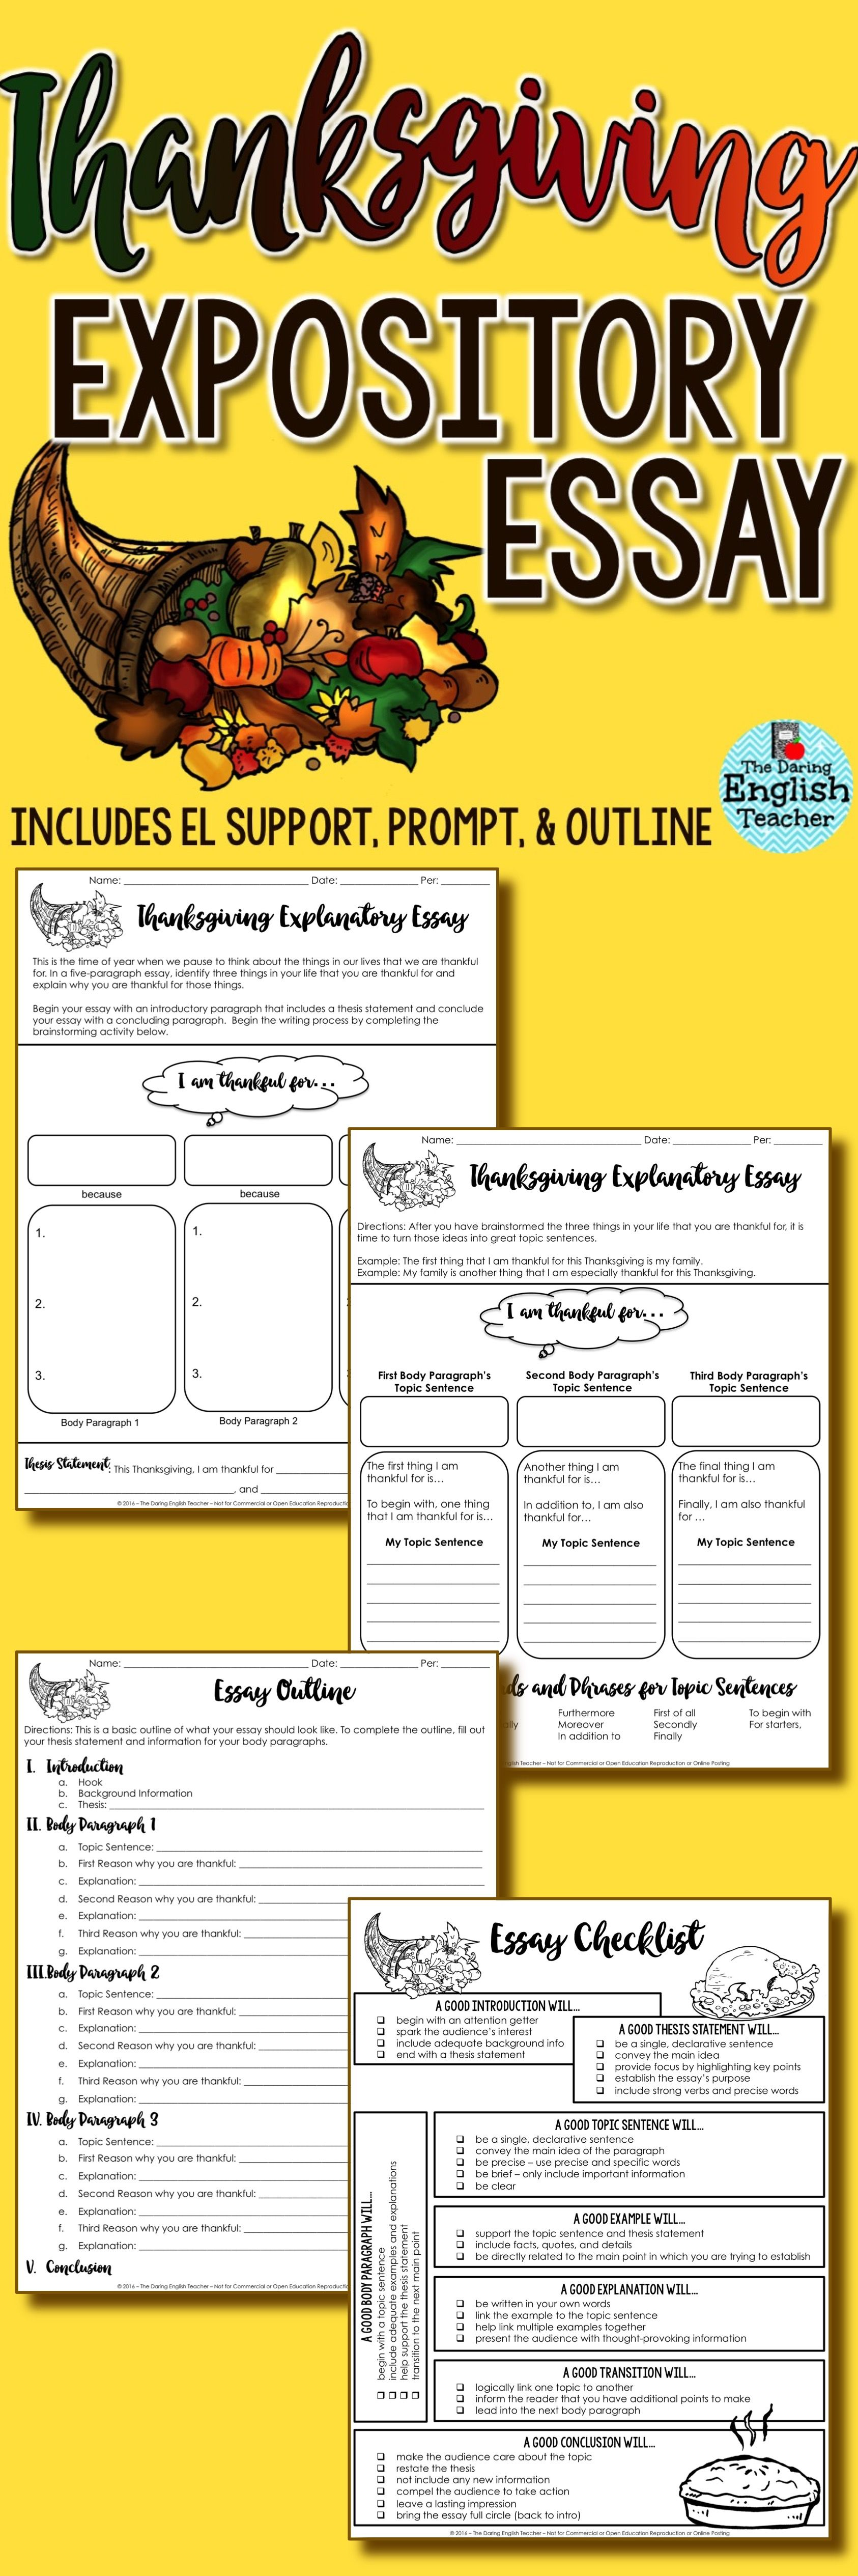 Thanksgiving Expository Writing For Middle School And High